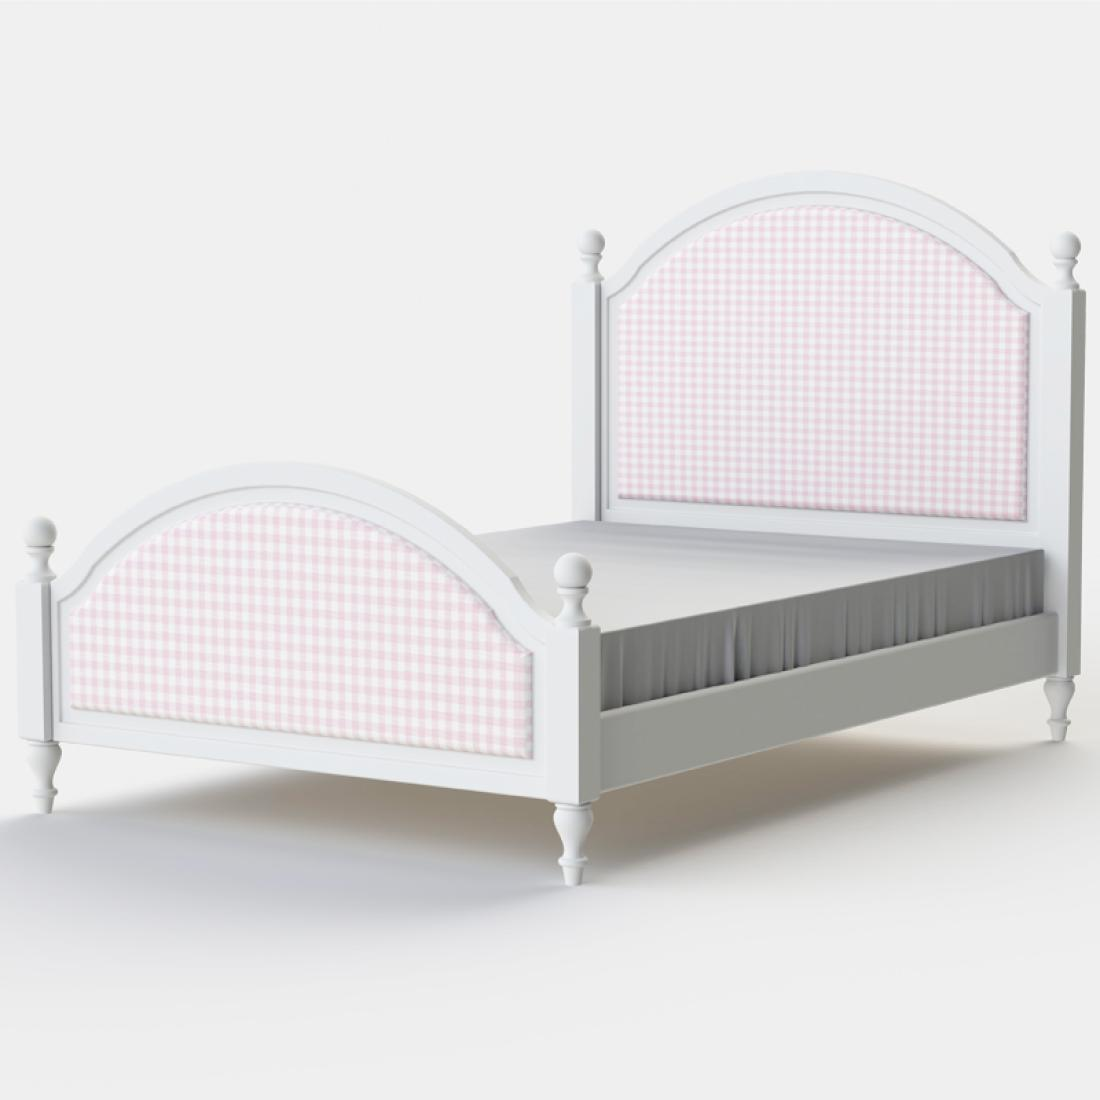 Sammy Girls Double Bed | Childrens Double Bed | Kids Double Beds